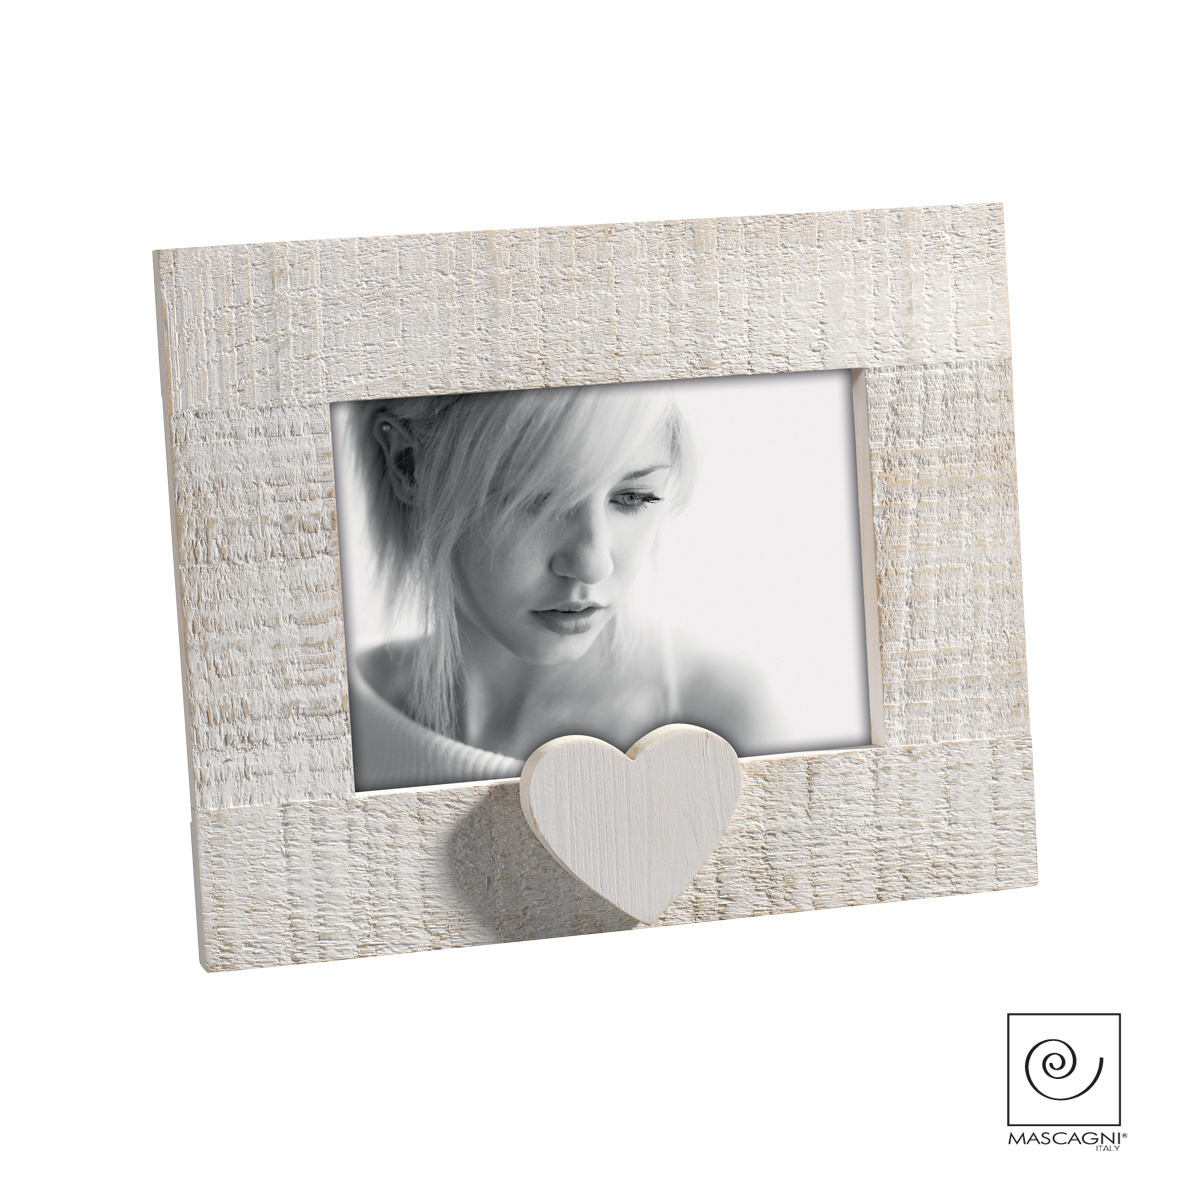 Art Mascagni A456 PHOTO FRAME 13X18